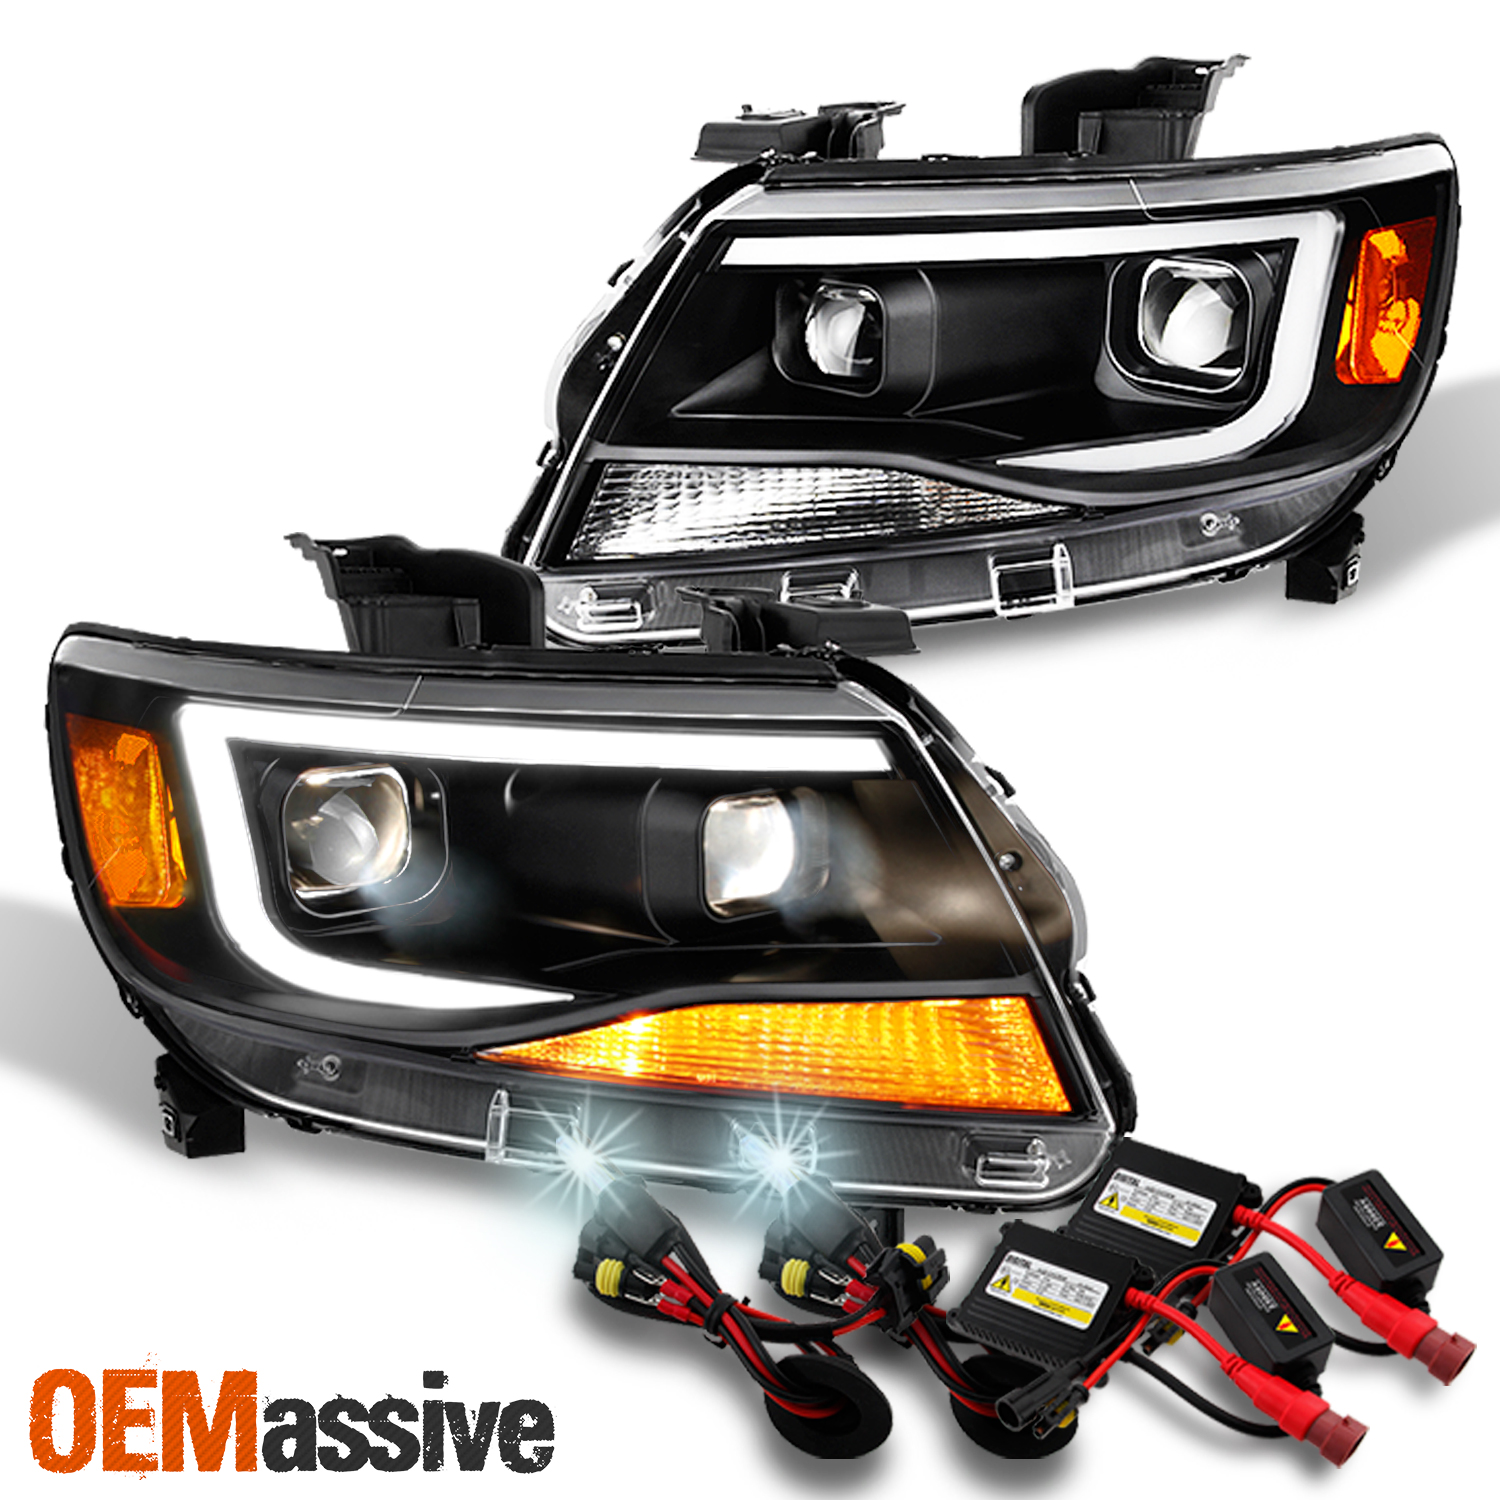 6000K HID XENON+FACTORY OE BLK HEAD LIGHTS SIGNAL LAMPS AMBER DY 15-17 FORD F150